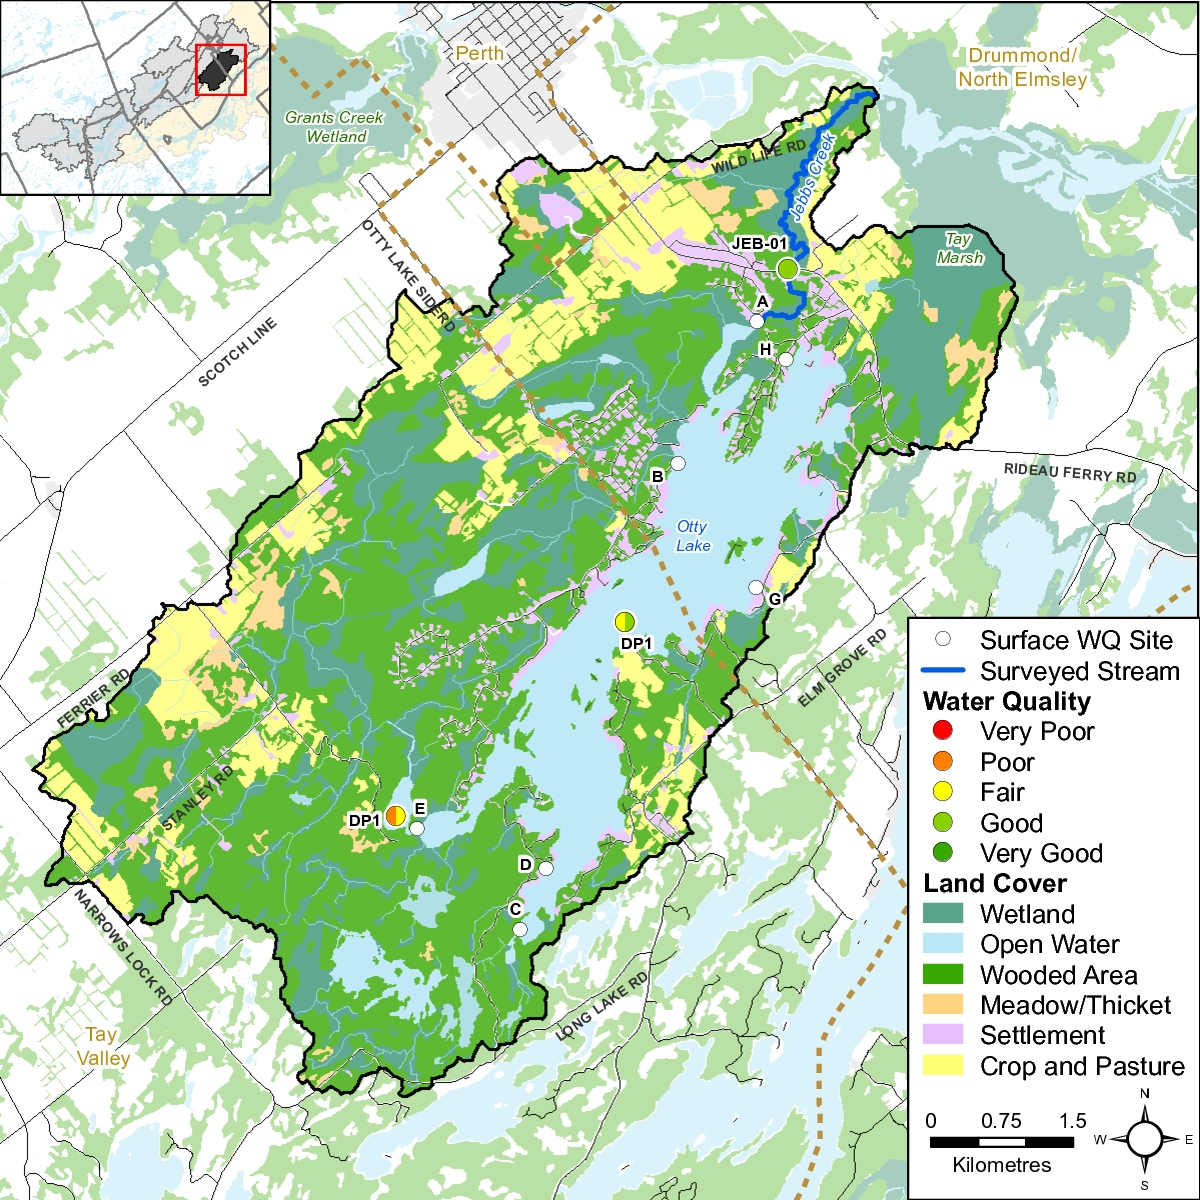 Figure 2 Water quality monitoring sites on Otty Lake and Jebbs Creek